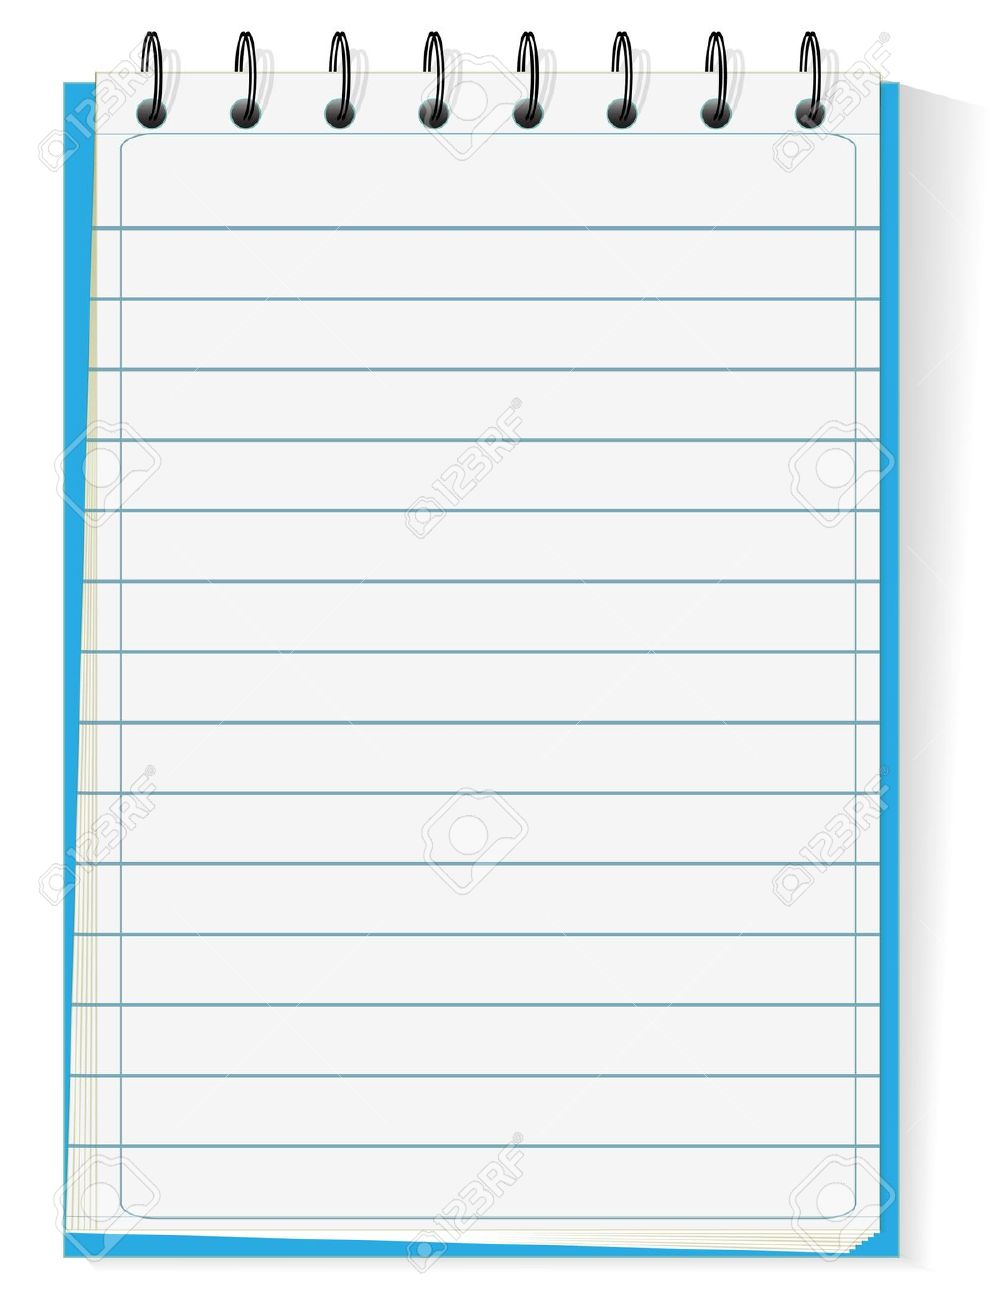 Spiral notepad clipart - Clipground